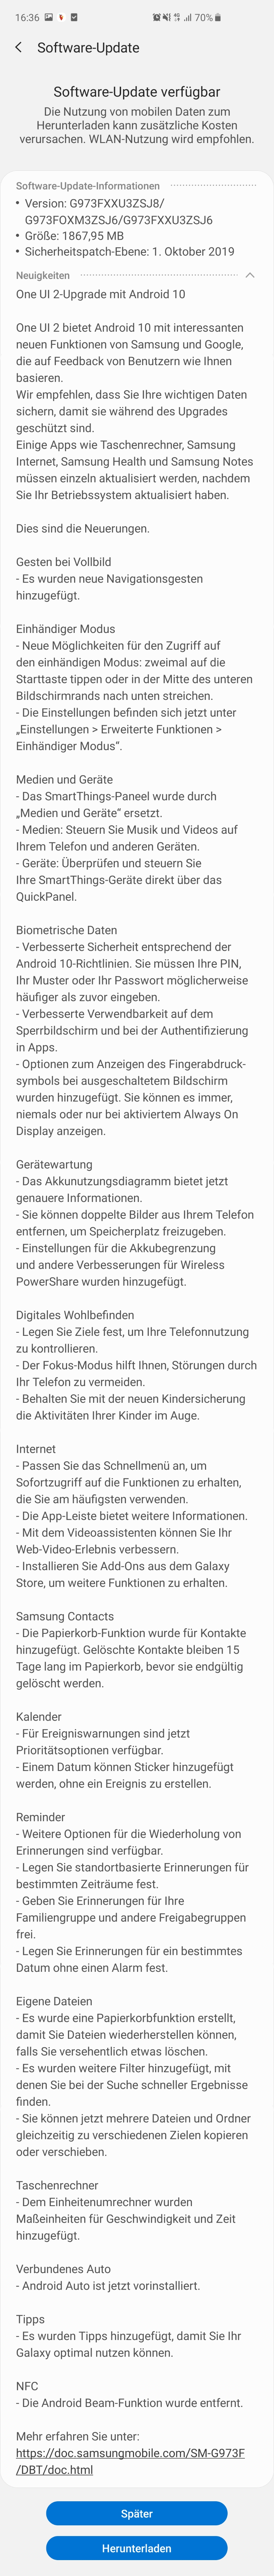 Android 10 Beta Changelog Samsung Galaxy S10